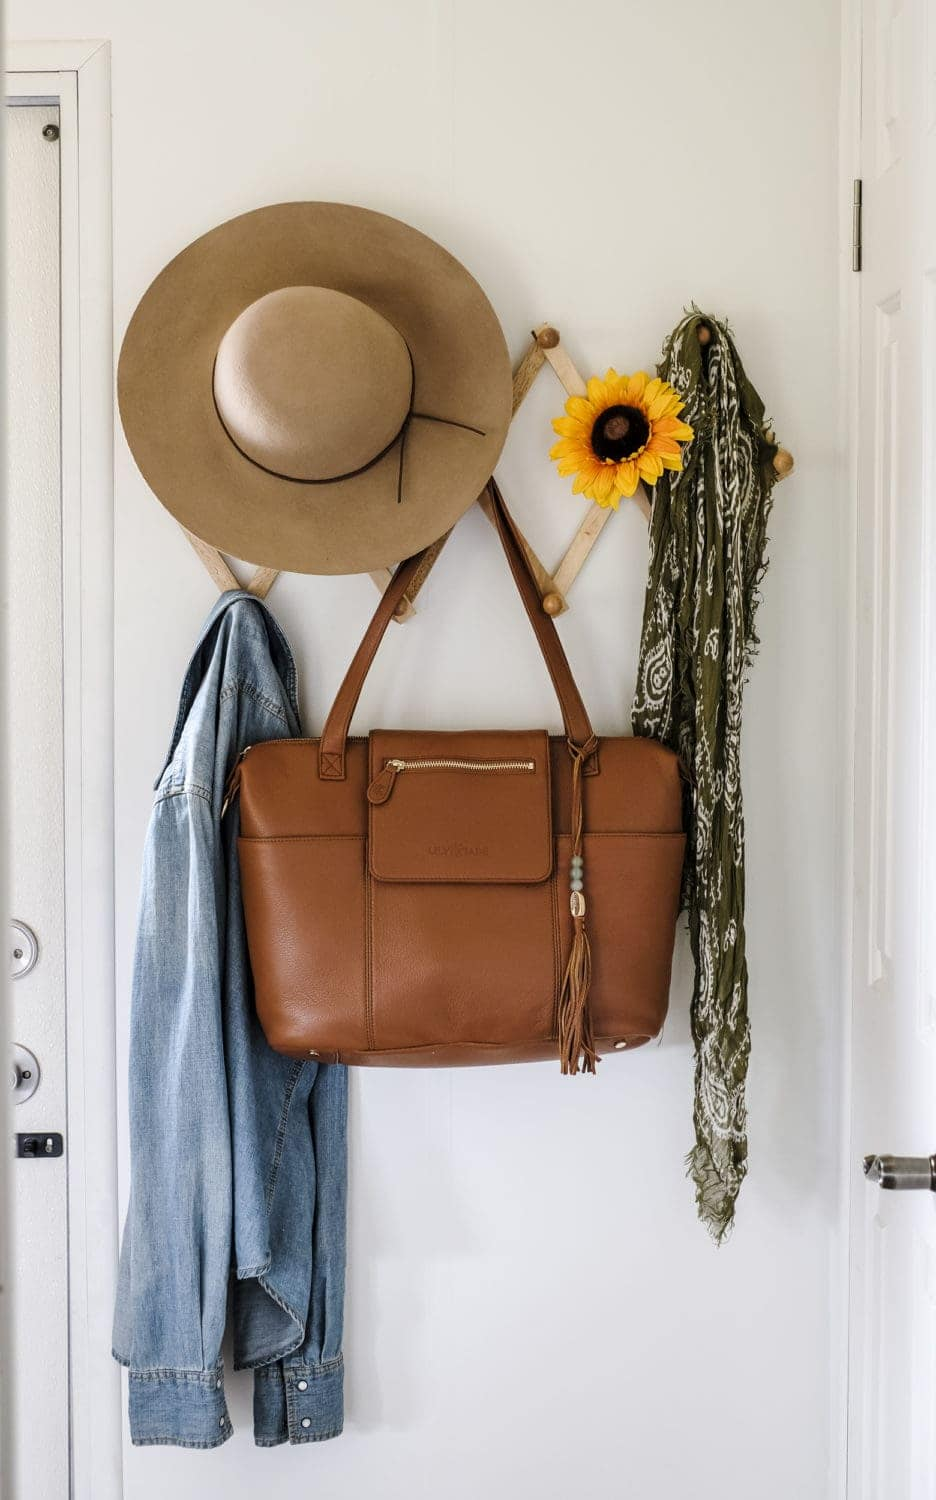 leather diaper bag hanging on coat rack